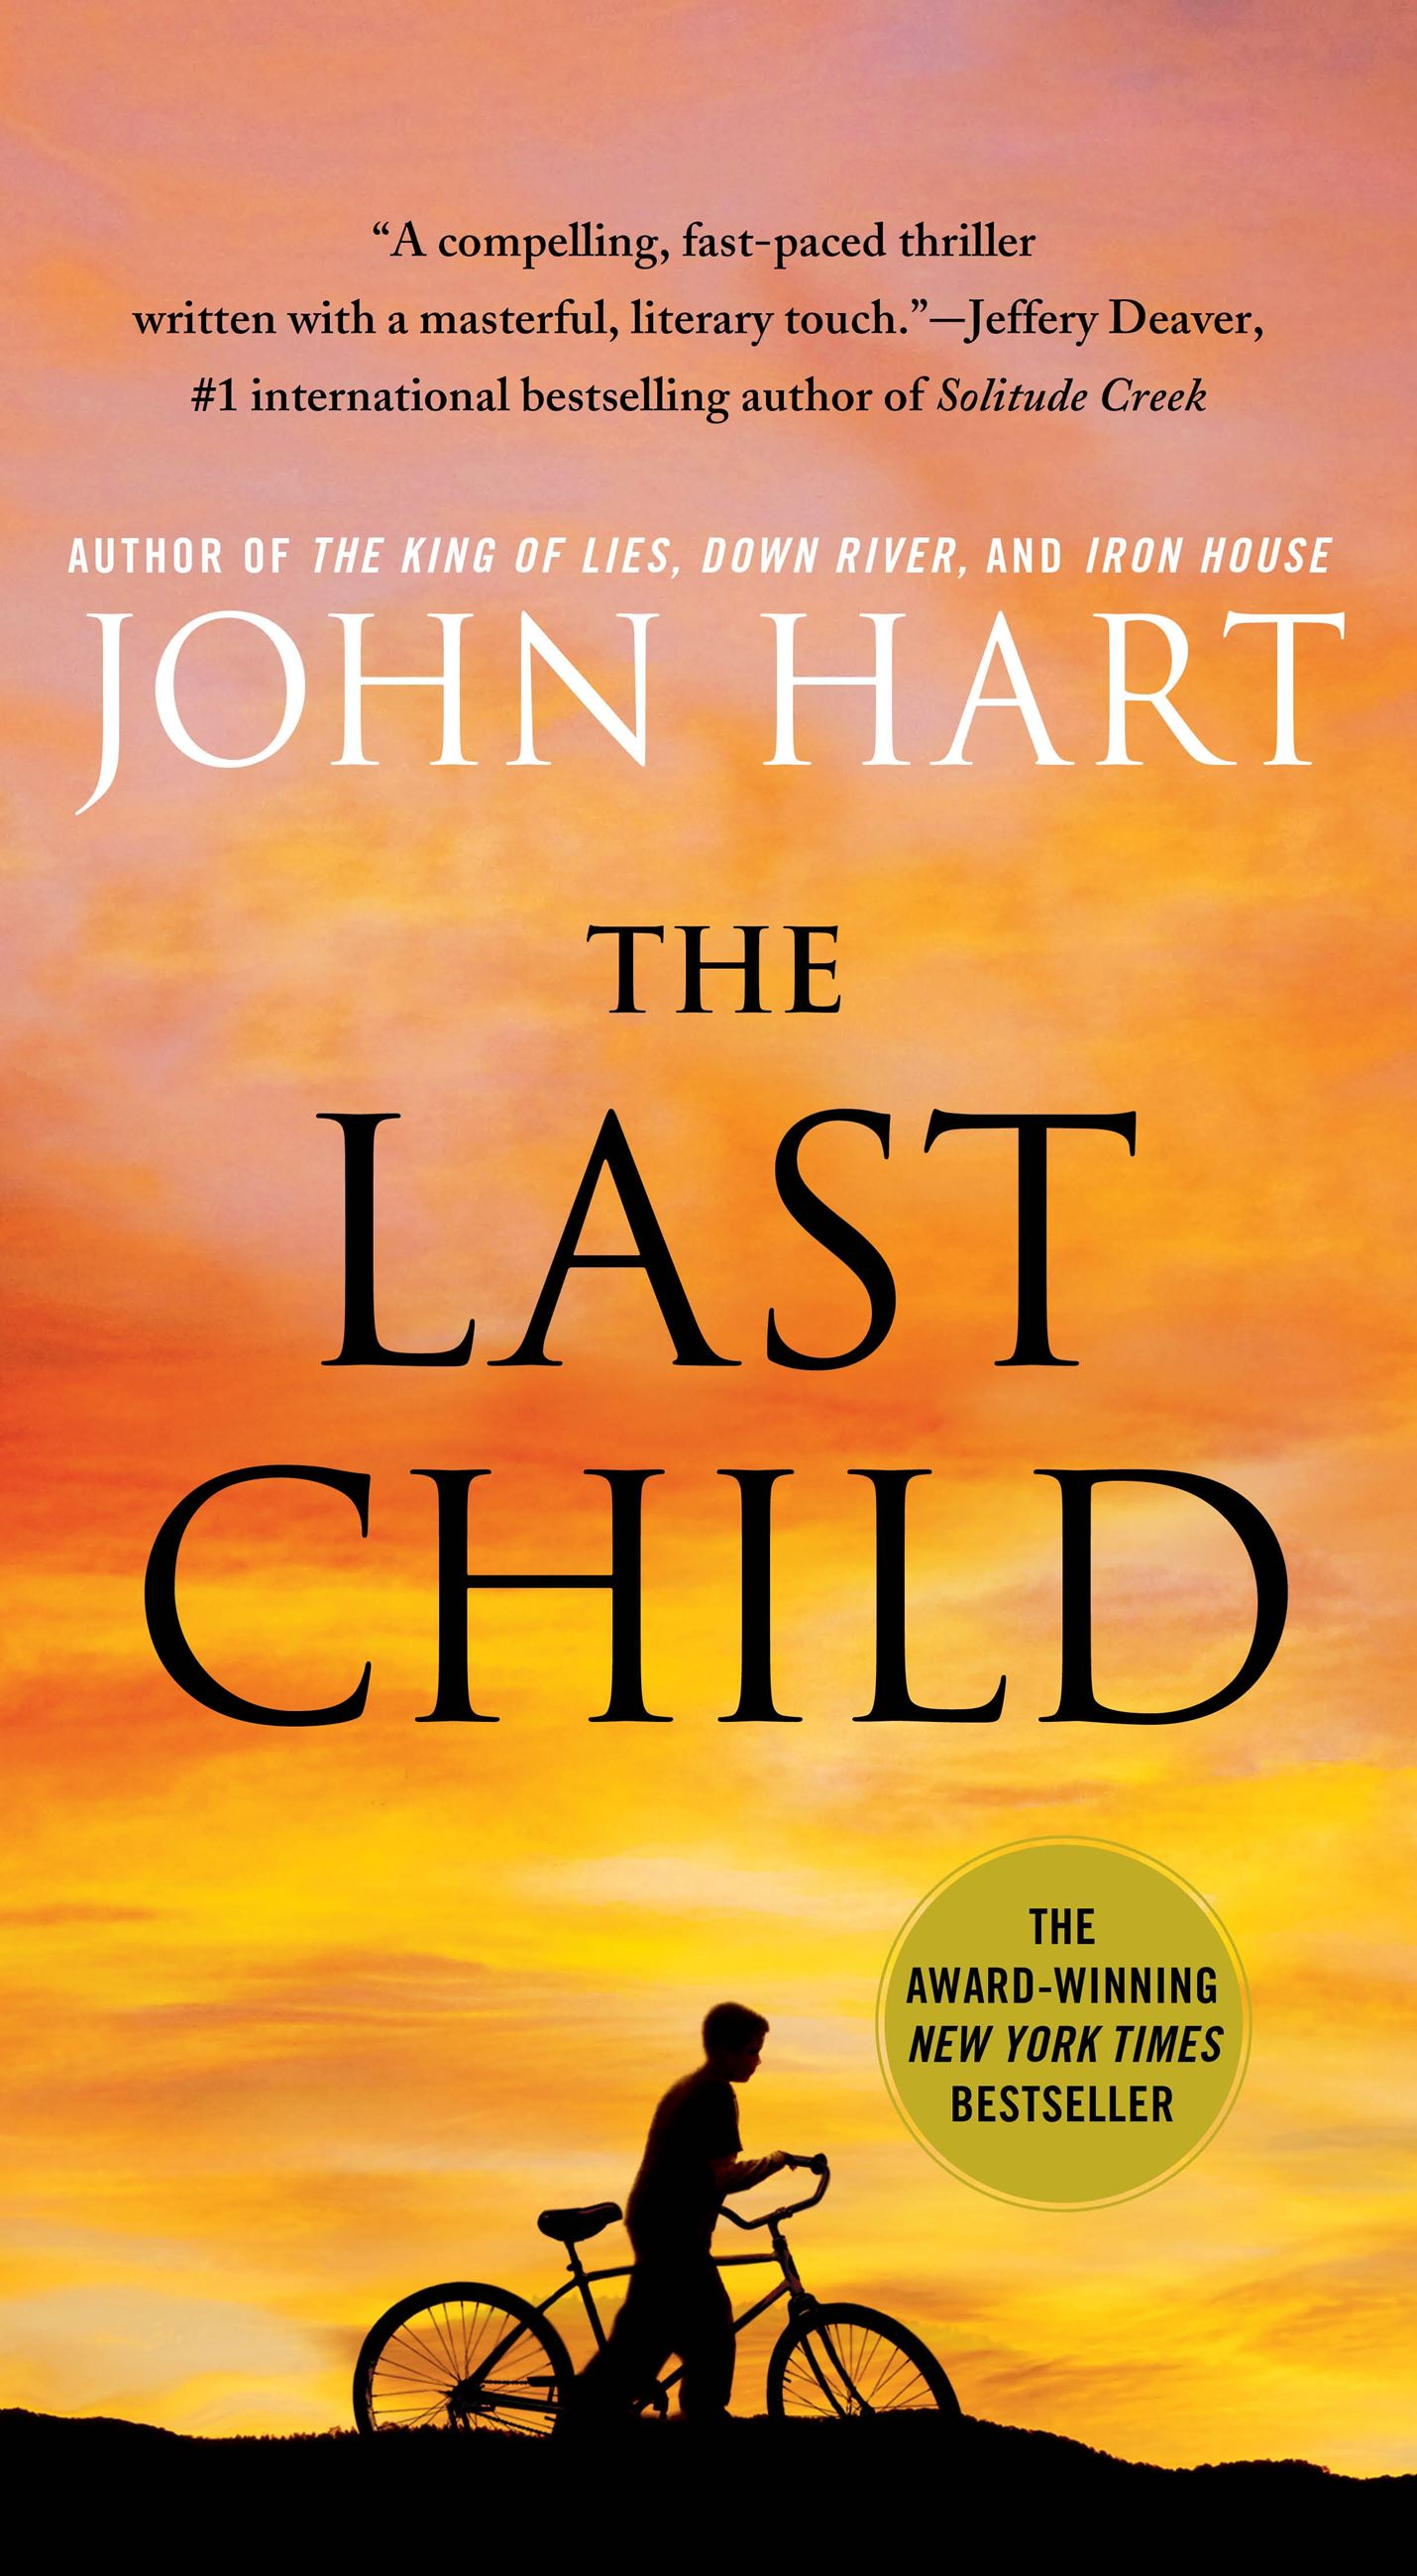 the last child book image